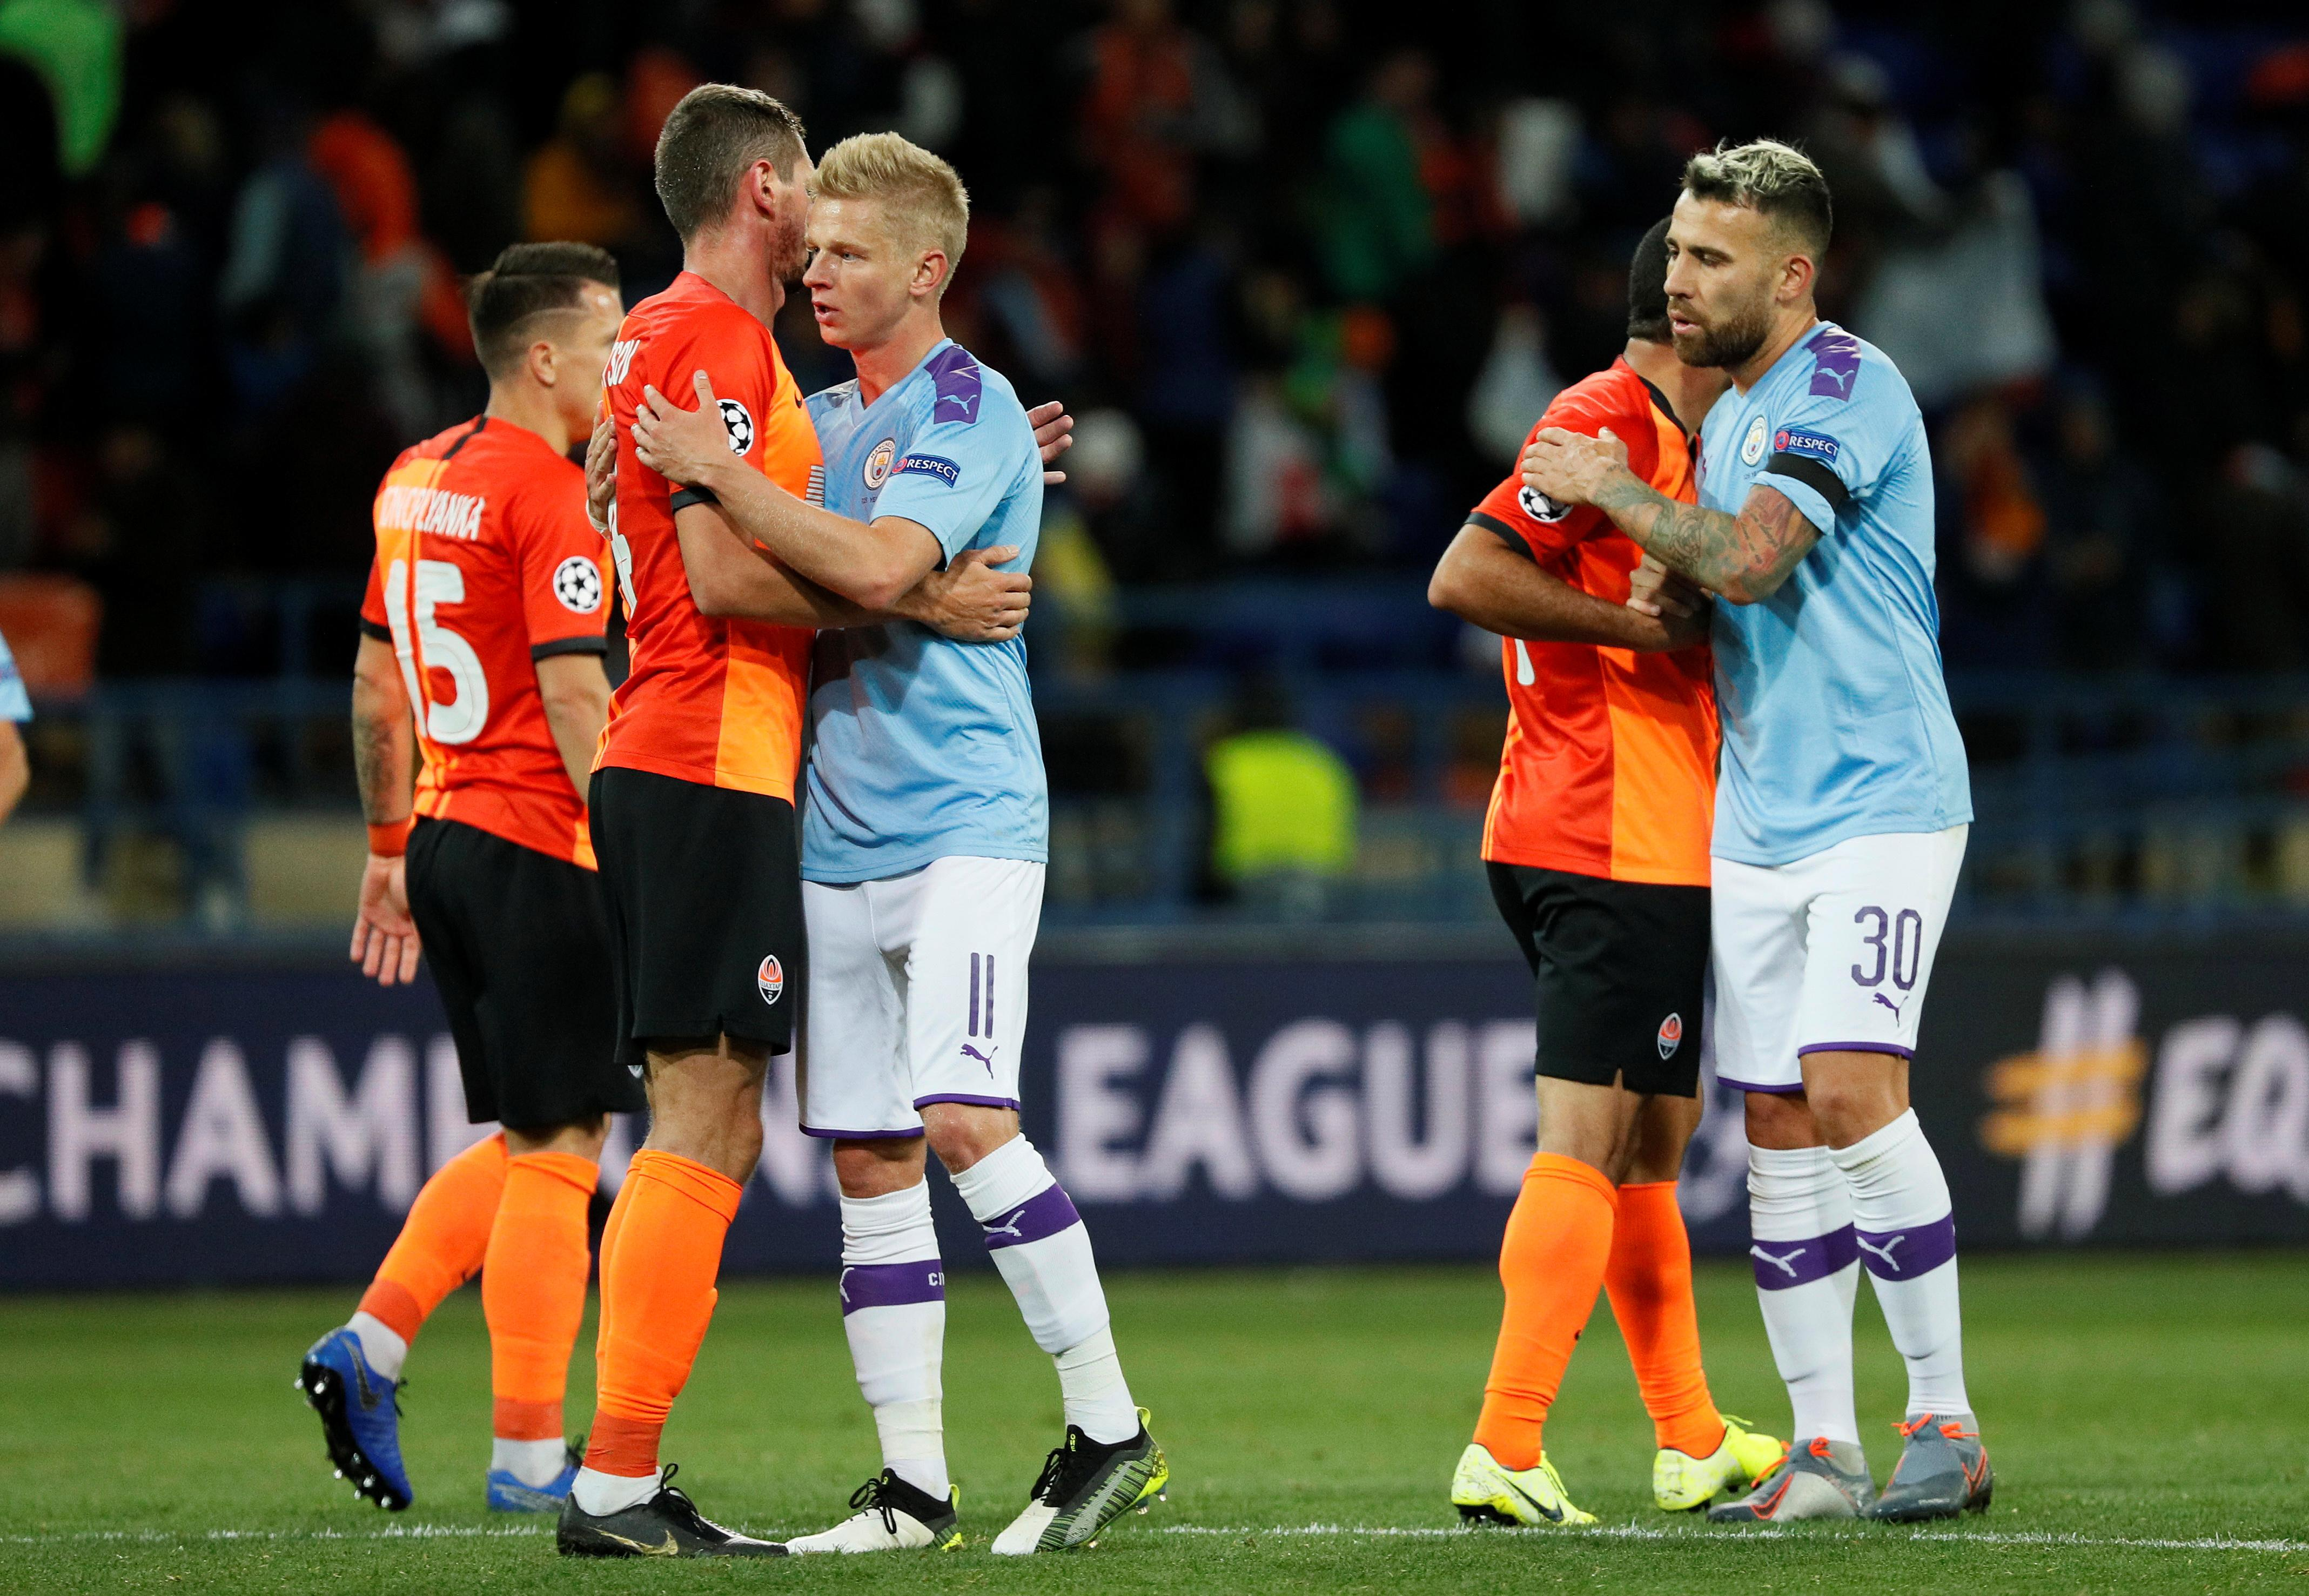 City put aside domestic slip with 3-0 win at Shakhtar